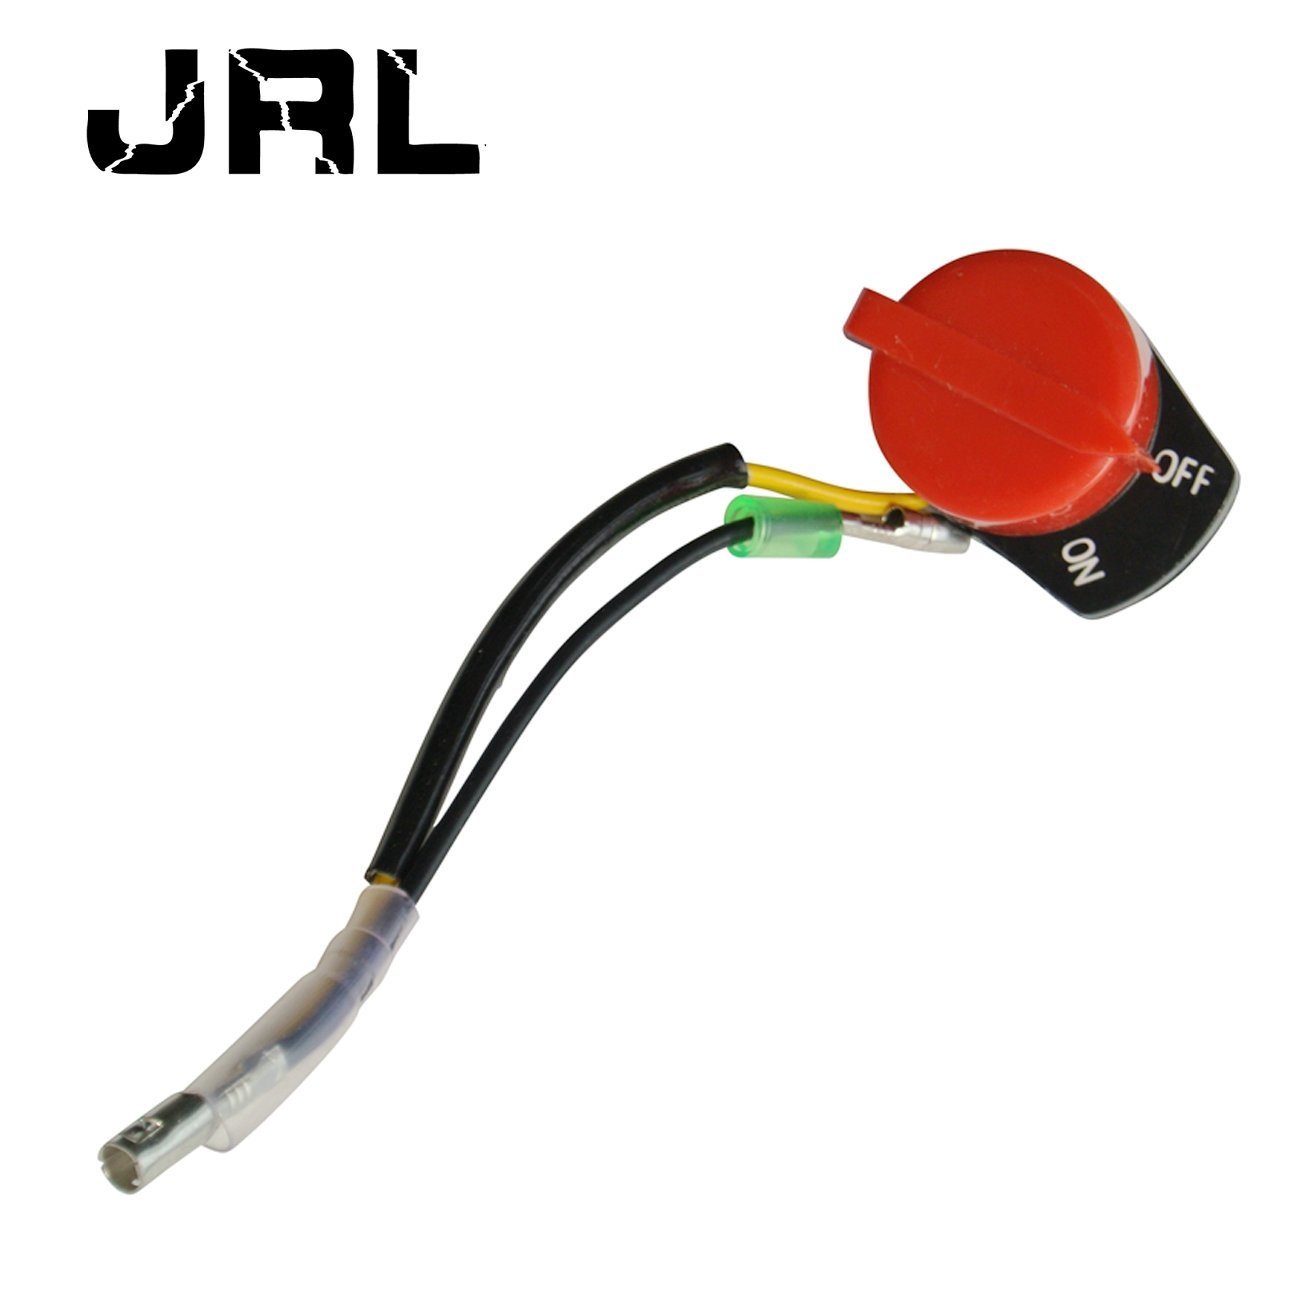 JRL Pressure Washer Stop Switch For Gasoline Engines 168F 170F GX160 188F 190F Linhai Power